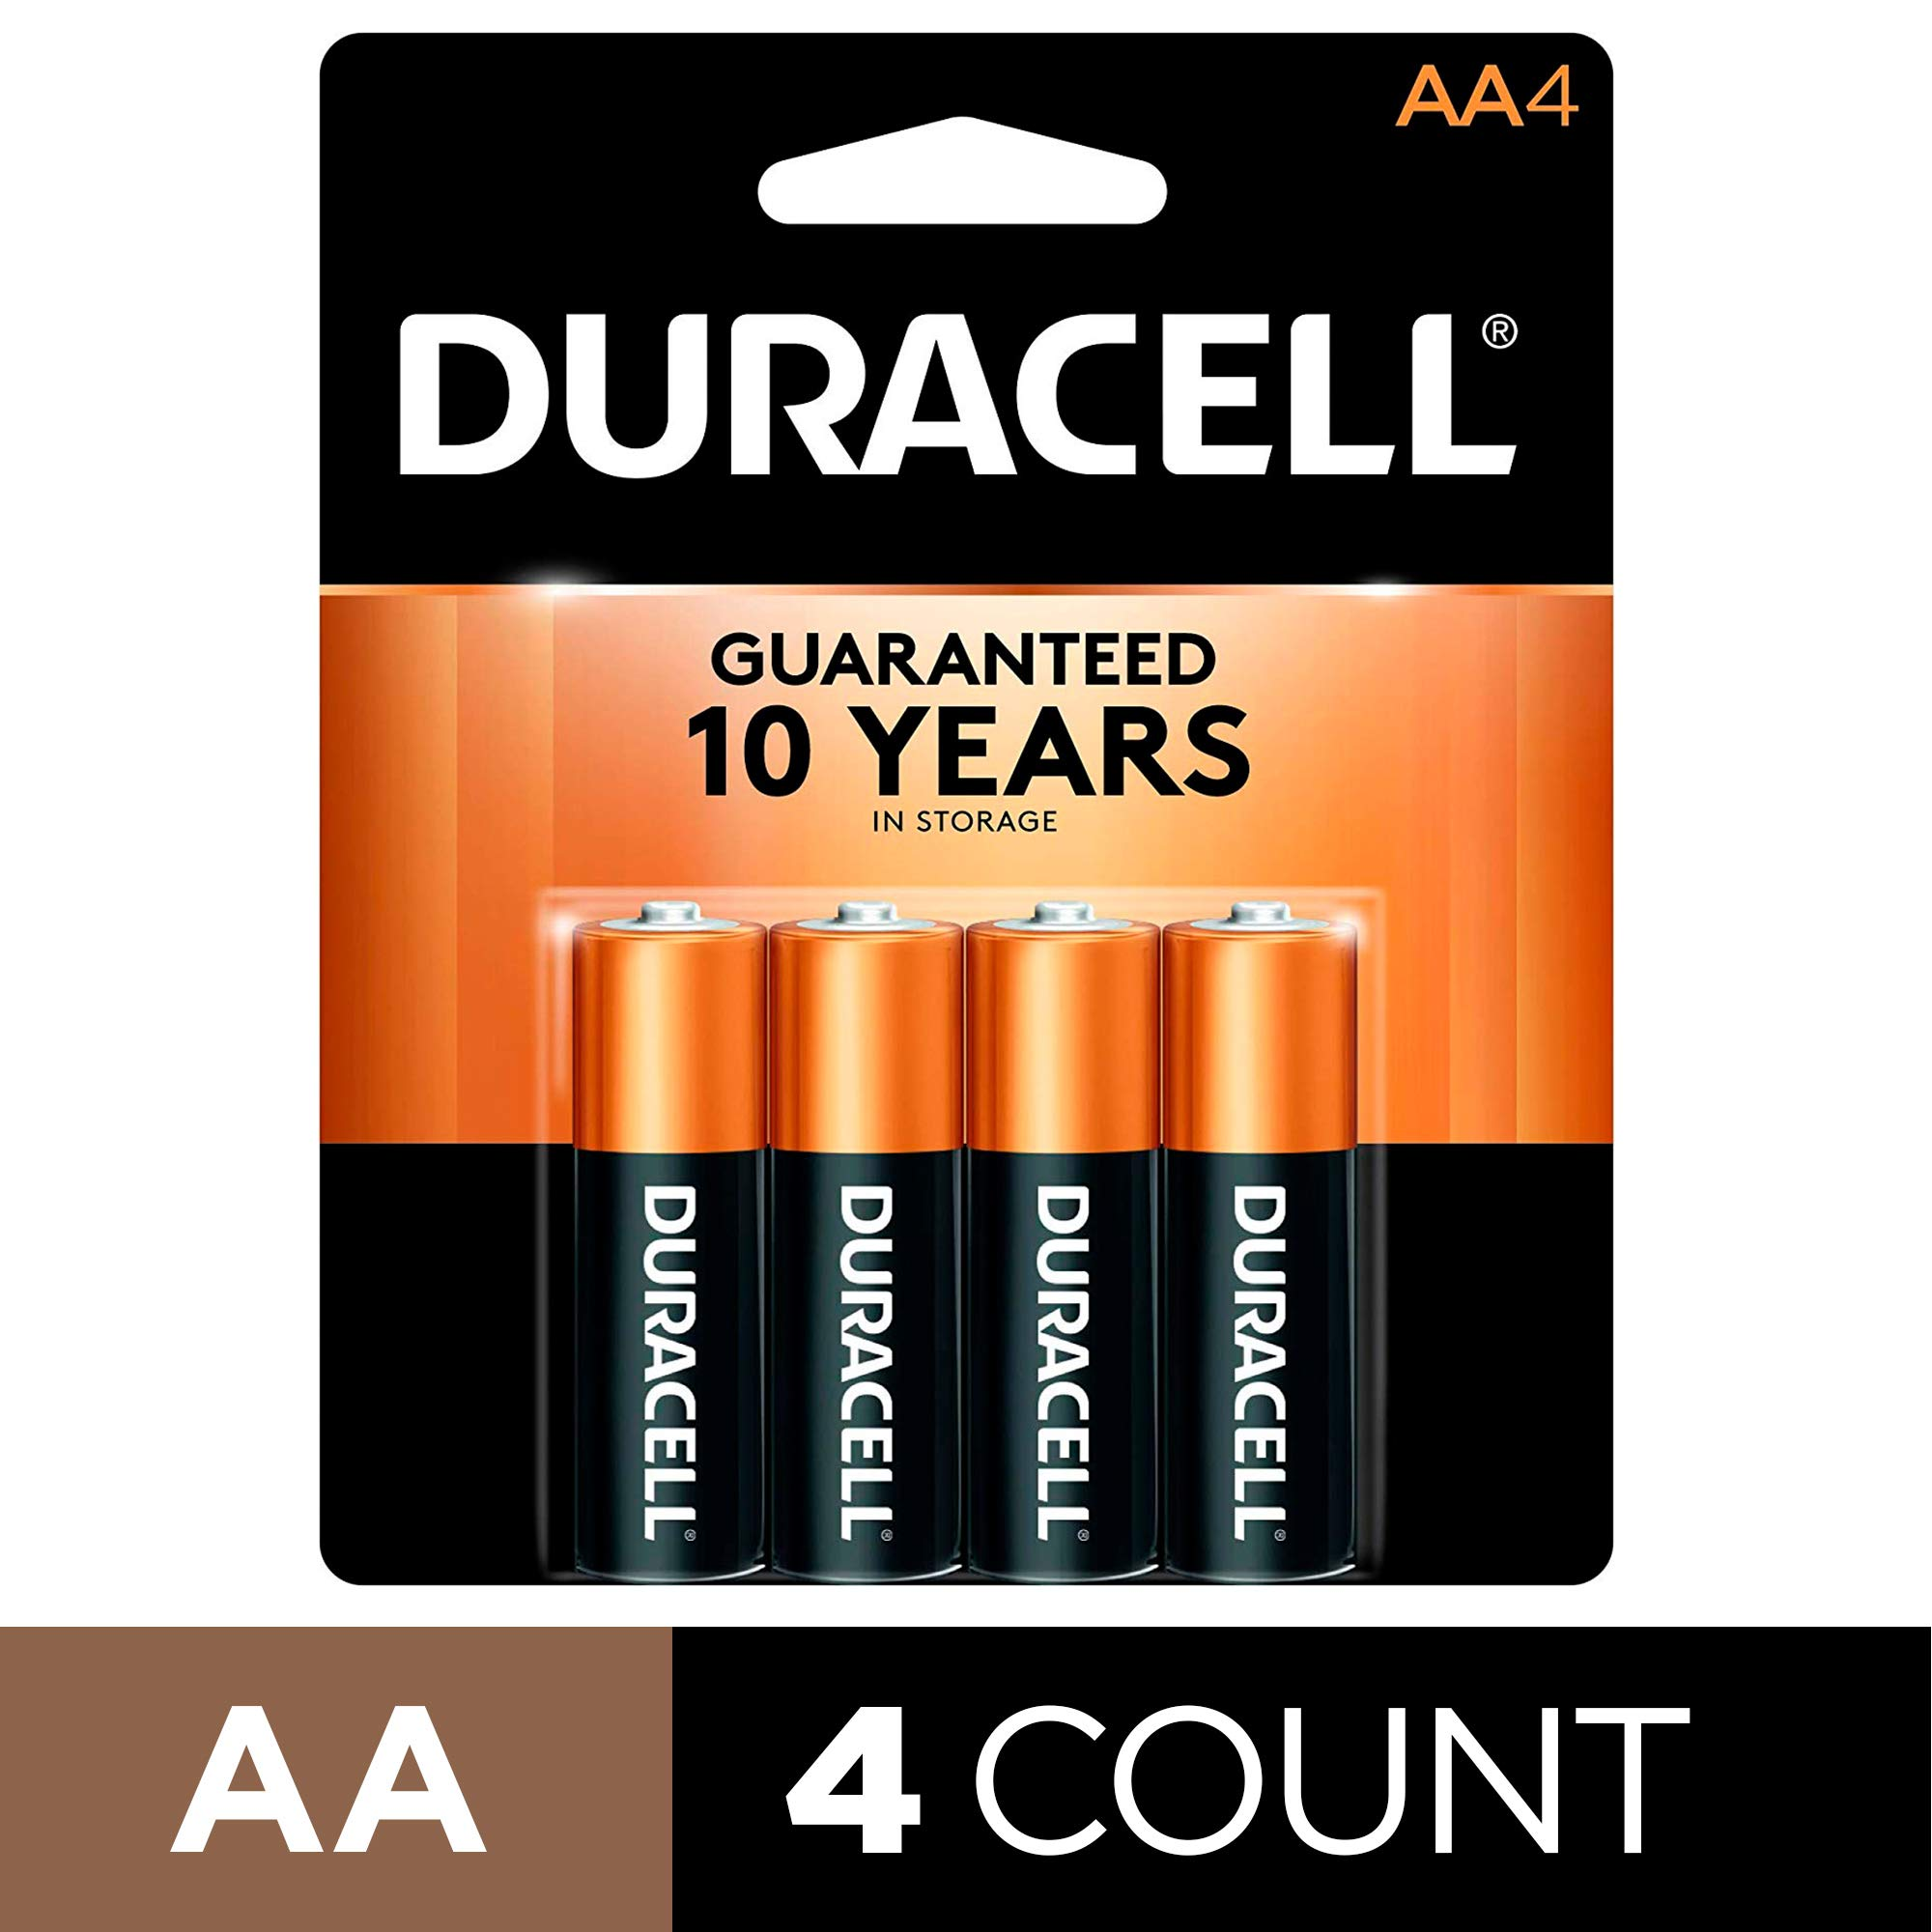 Duracell - CopperTop AA Alkaline Batteries - Long Lasting, All-Purpose Double A Battery for Household and Business – 4 Count